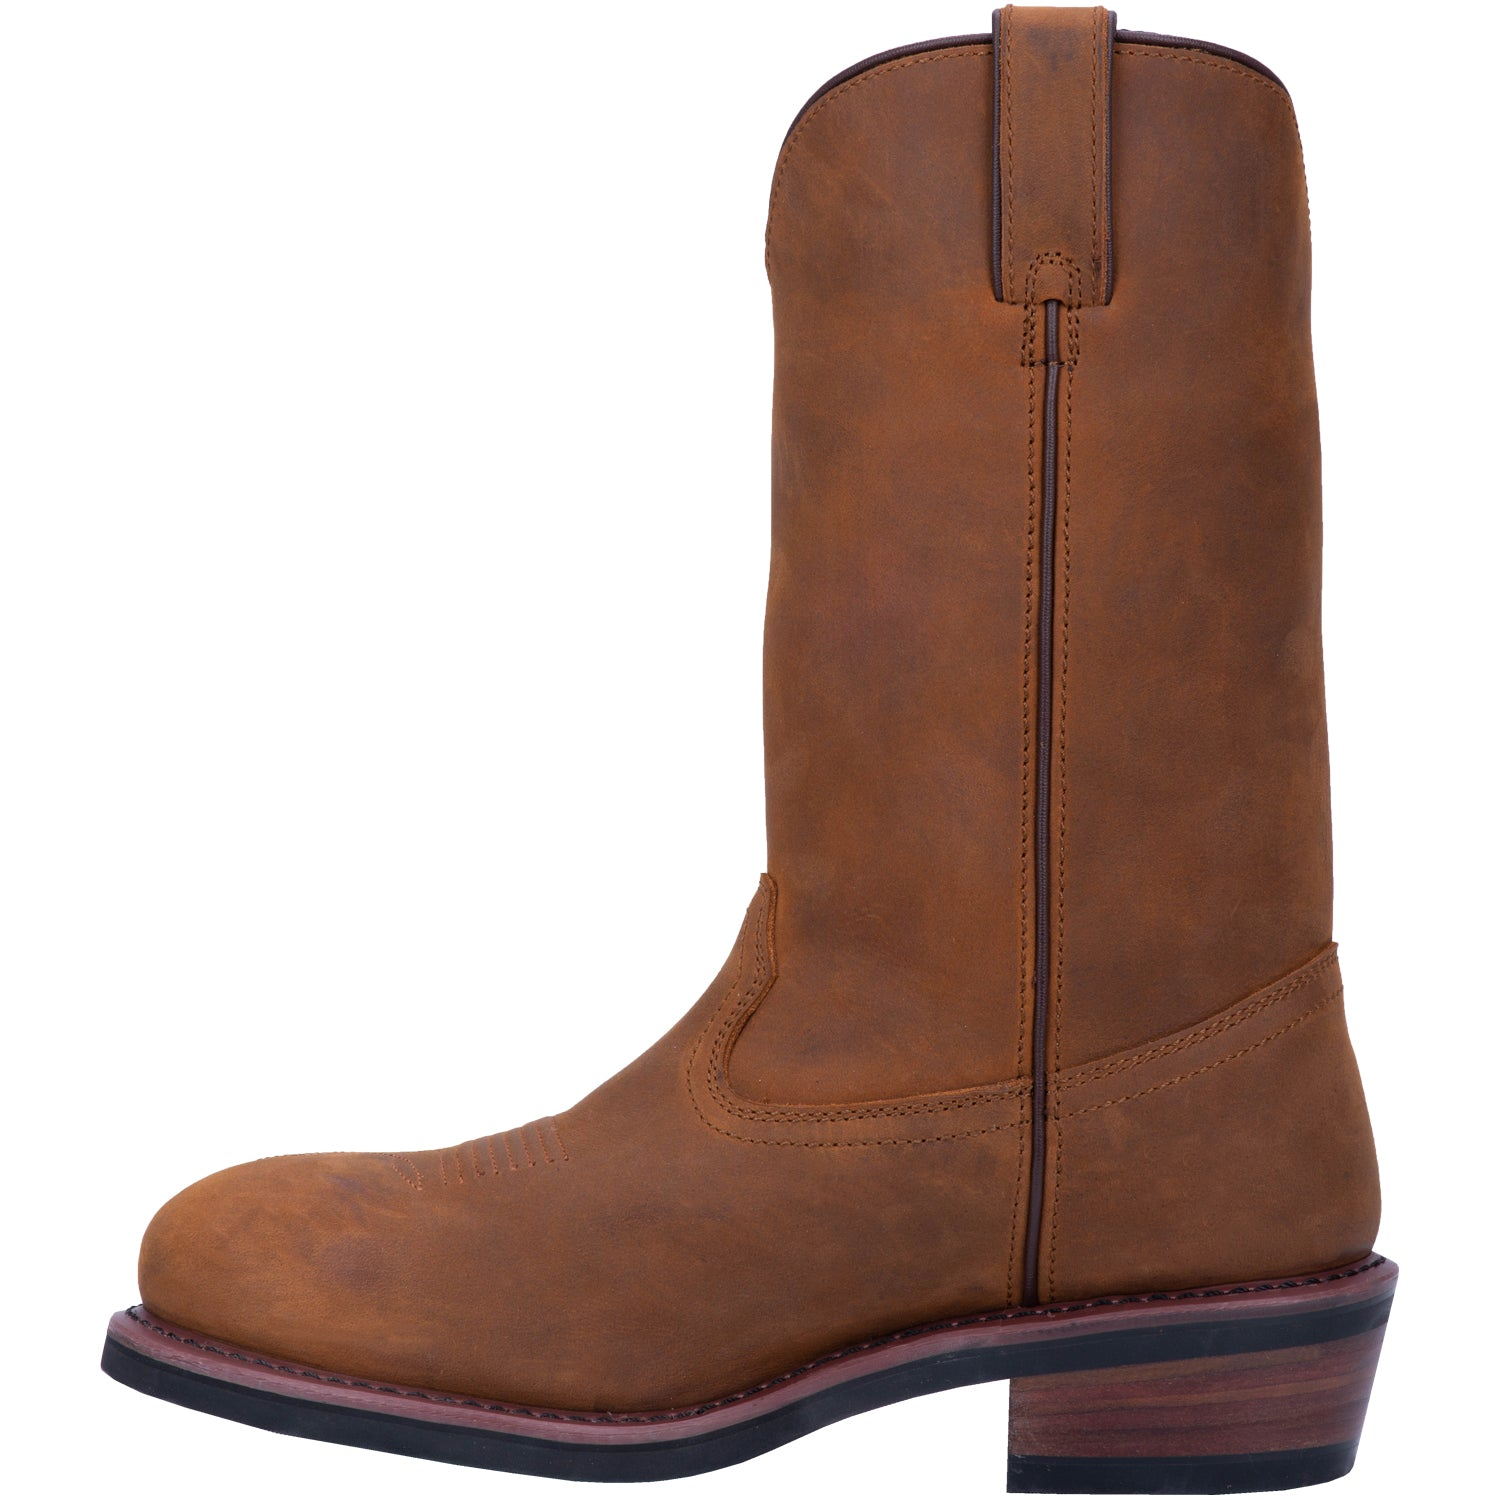 ALBUQUERQUE WATERPROOF LEATHER BOOT 15521805107242